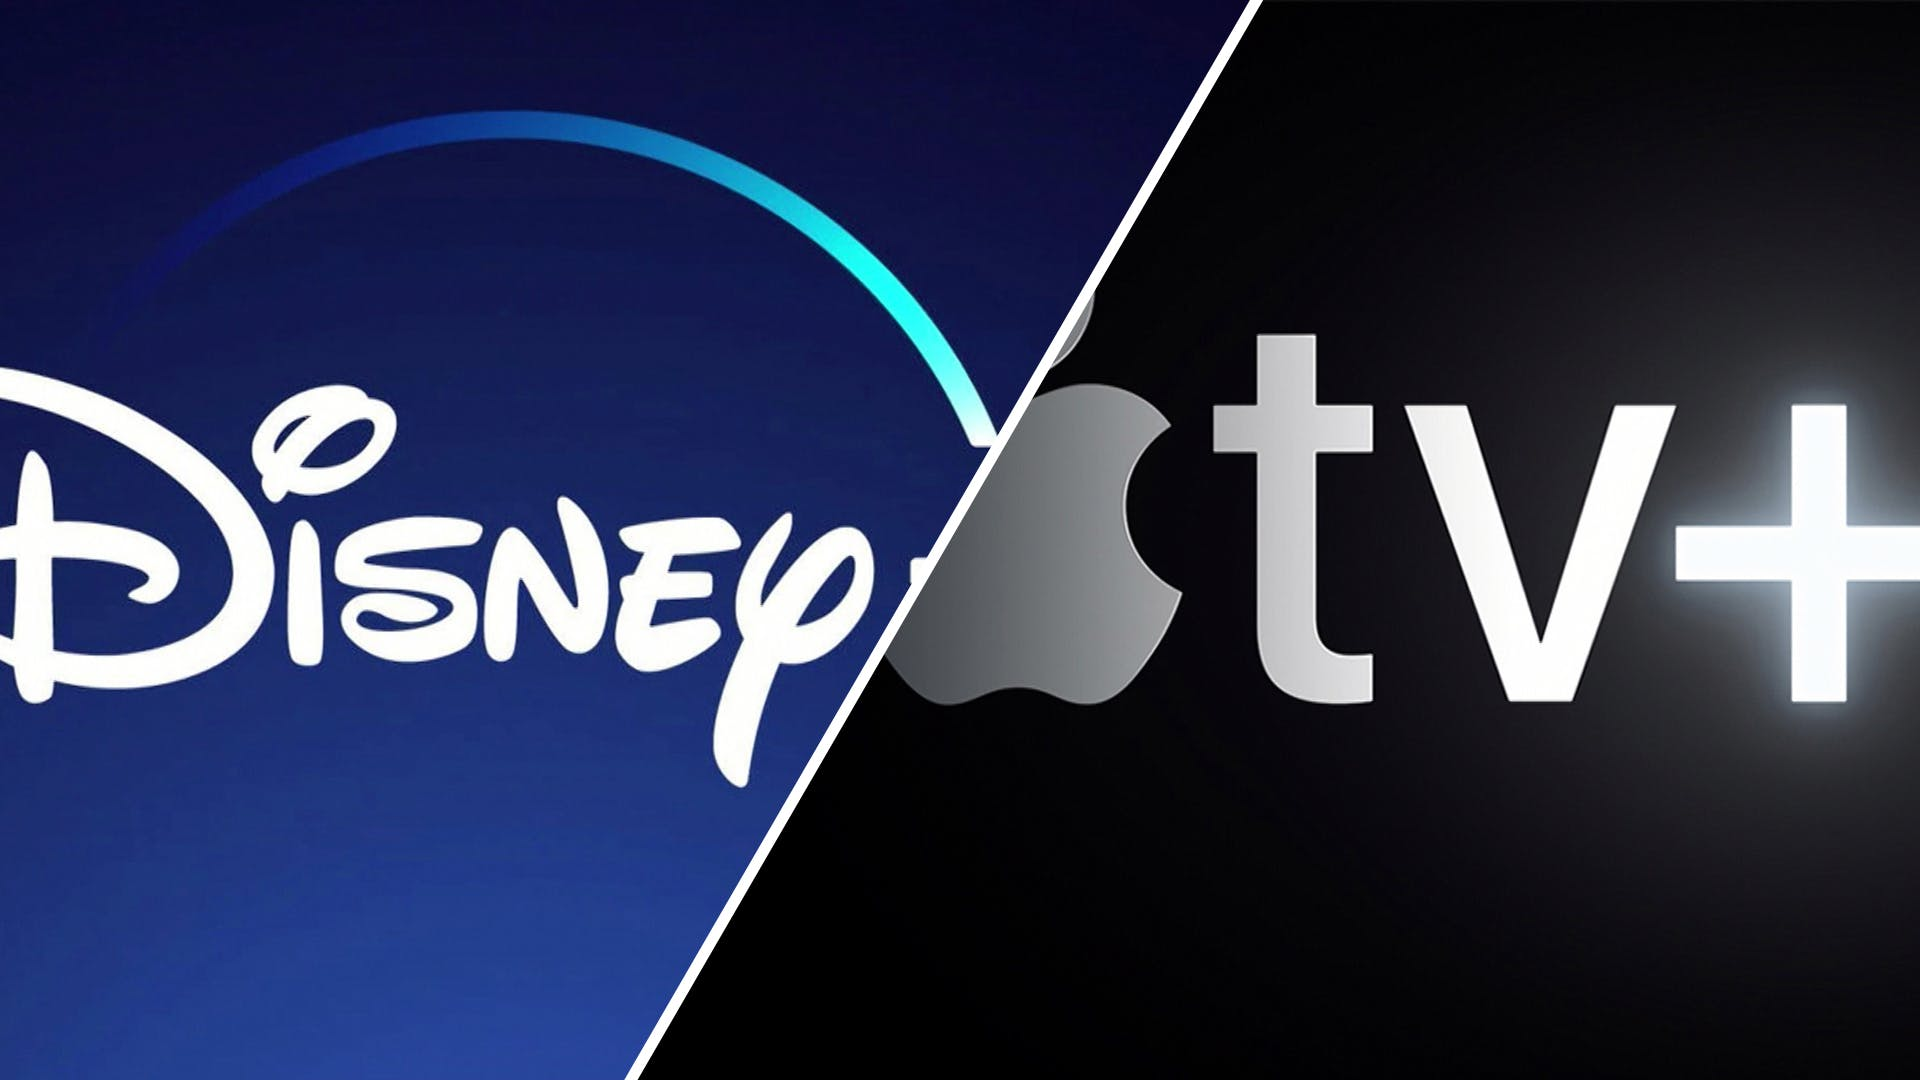 Ontketenen Disney+ en Apple TV Plus een streamingoorlog met Netflix?